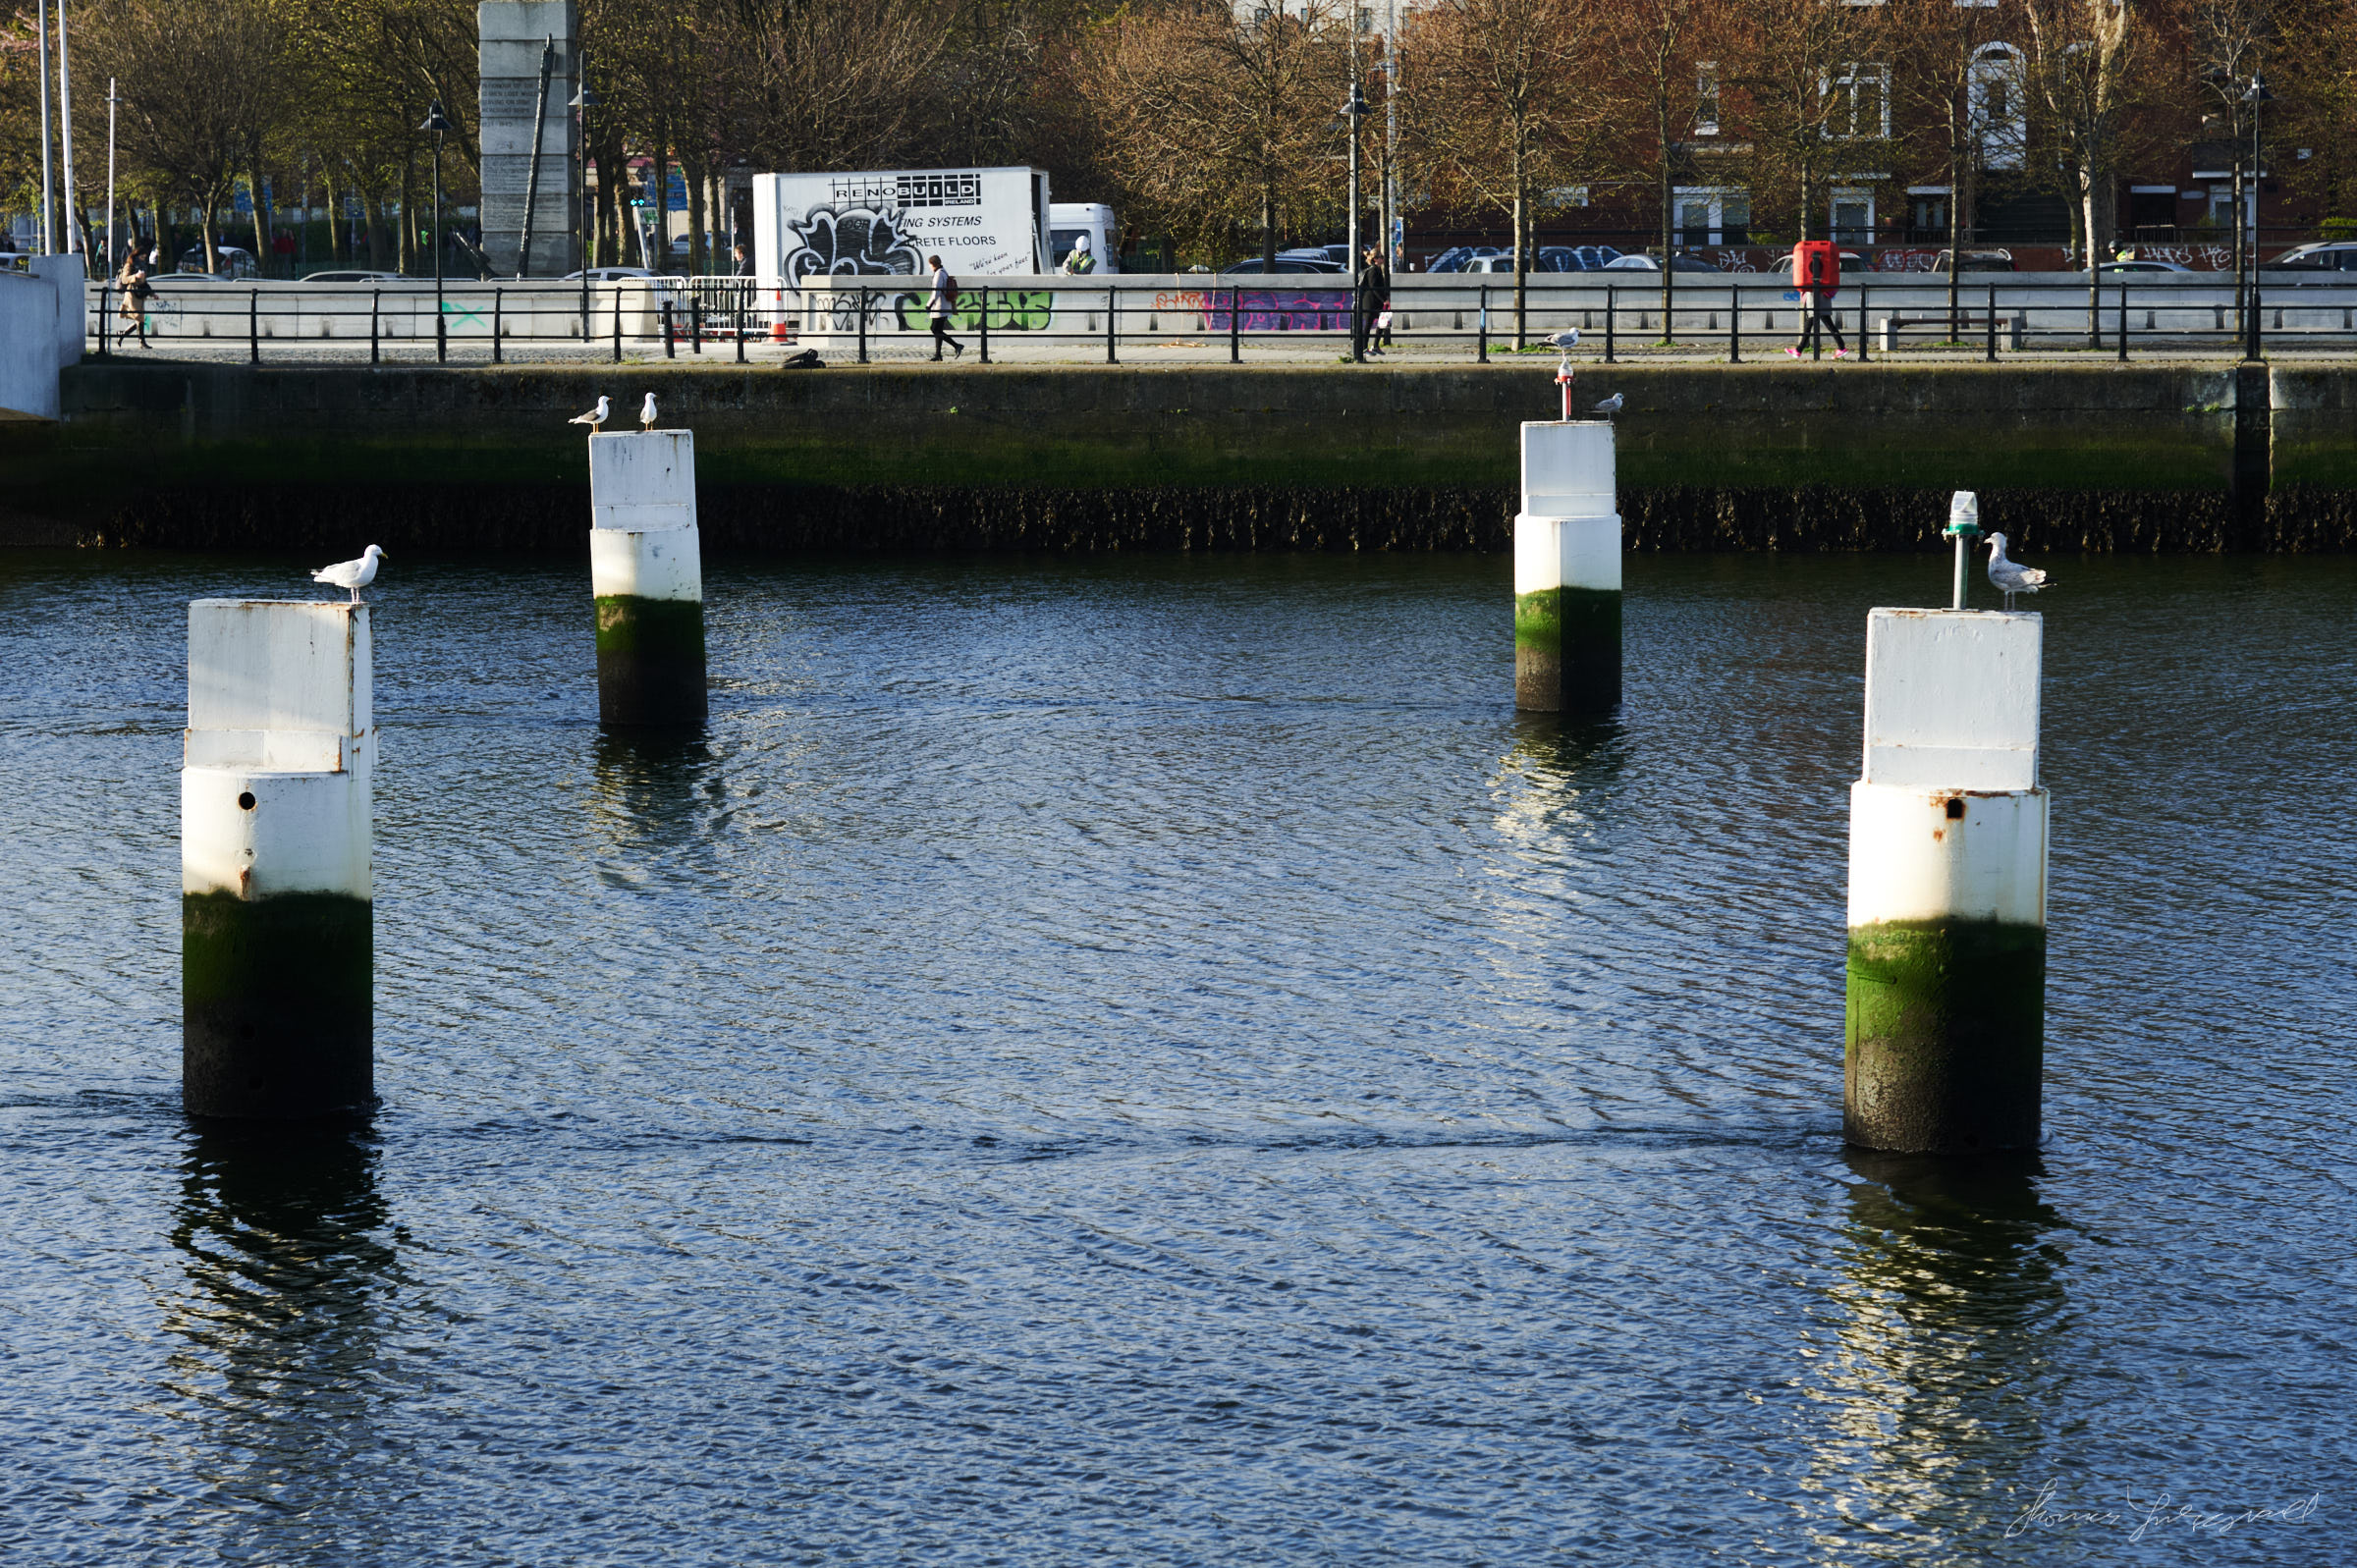 Seagulls on posts in the Liffey